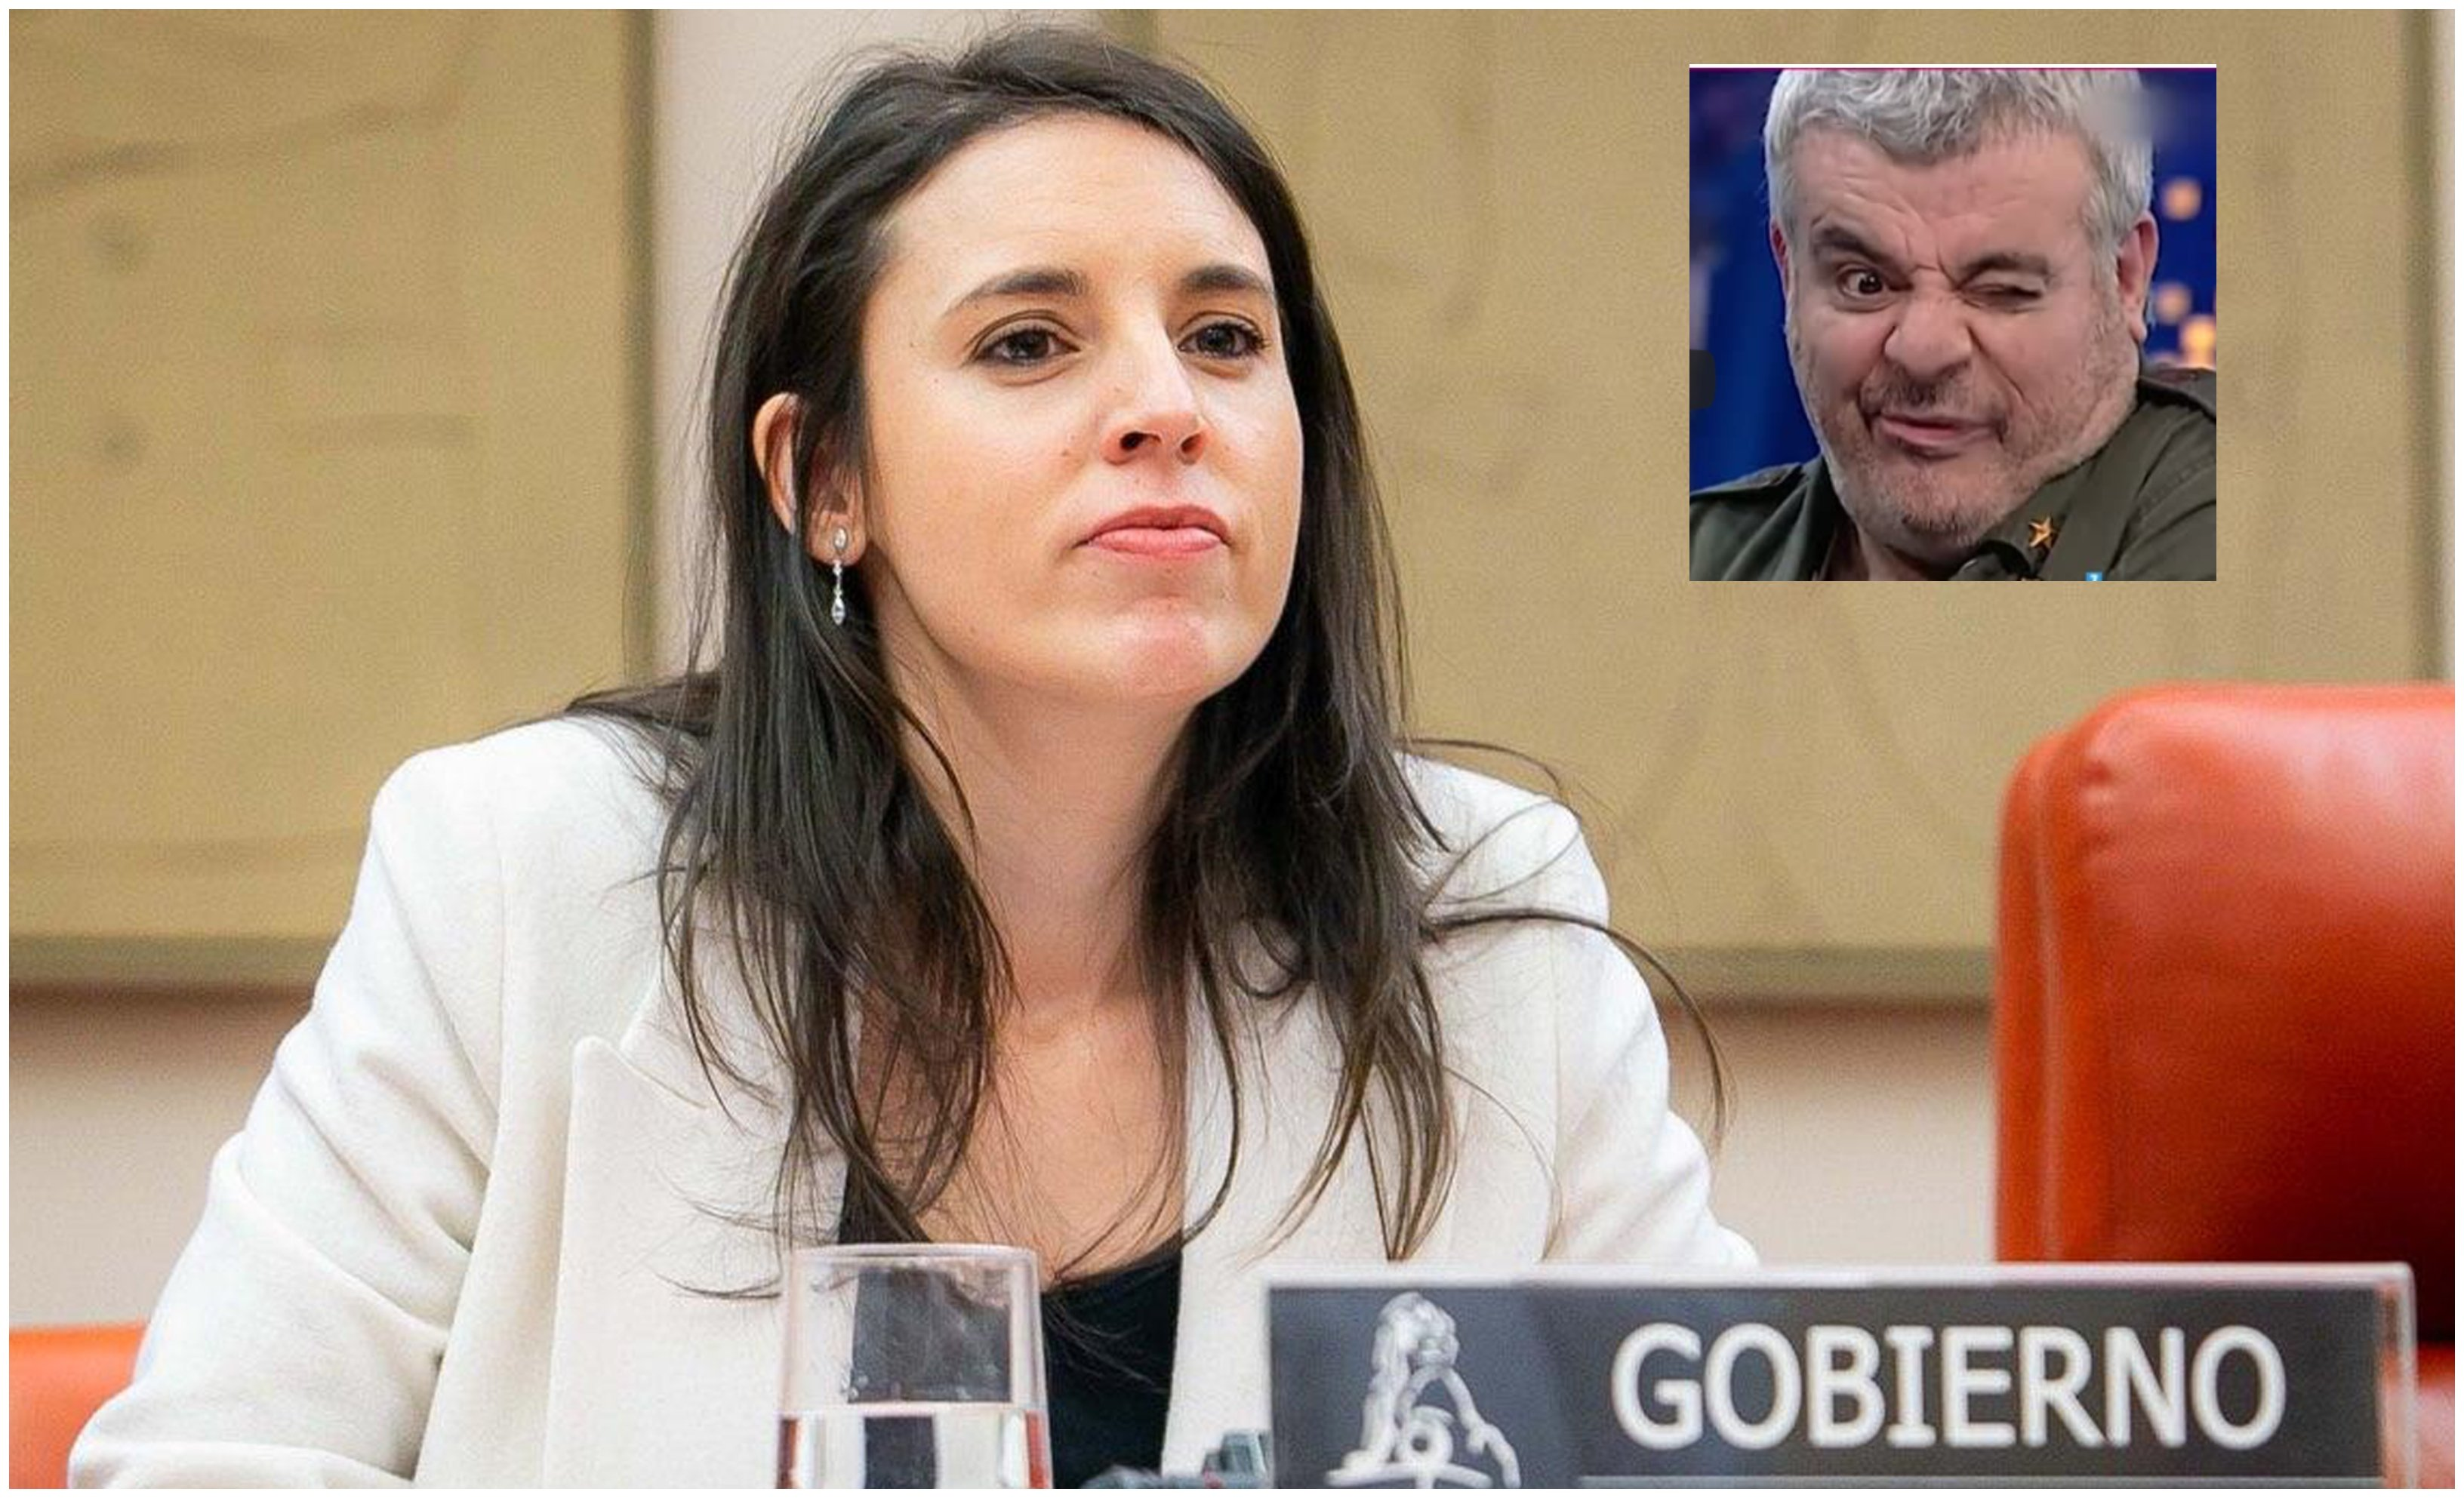 Irene Montero, ¡prrr!: A la ministra de Igualdad le preocupan la xenofobia, la islamofobia, el antisemitisno y el antigitanismo… la cristofobia, no. Esa pretende alentarla